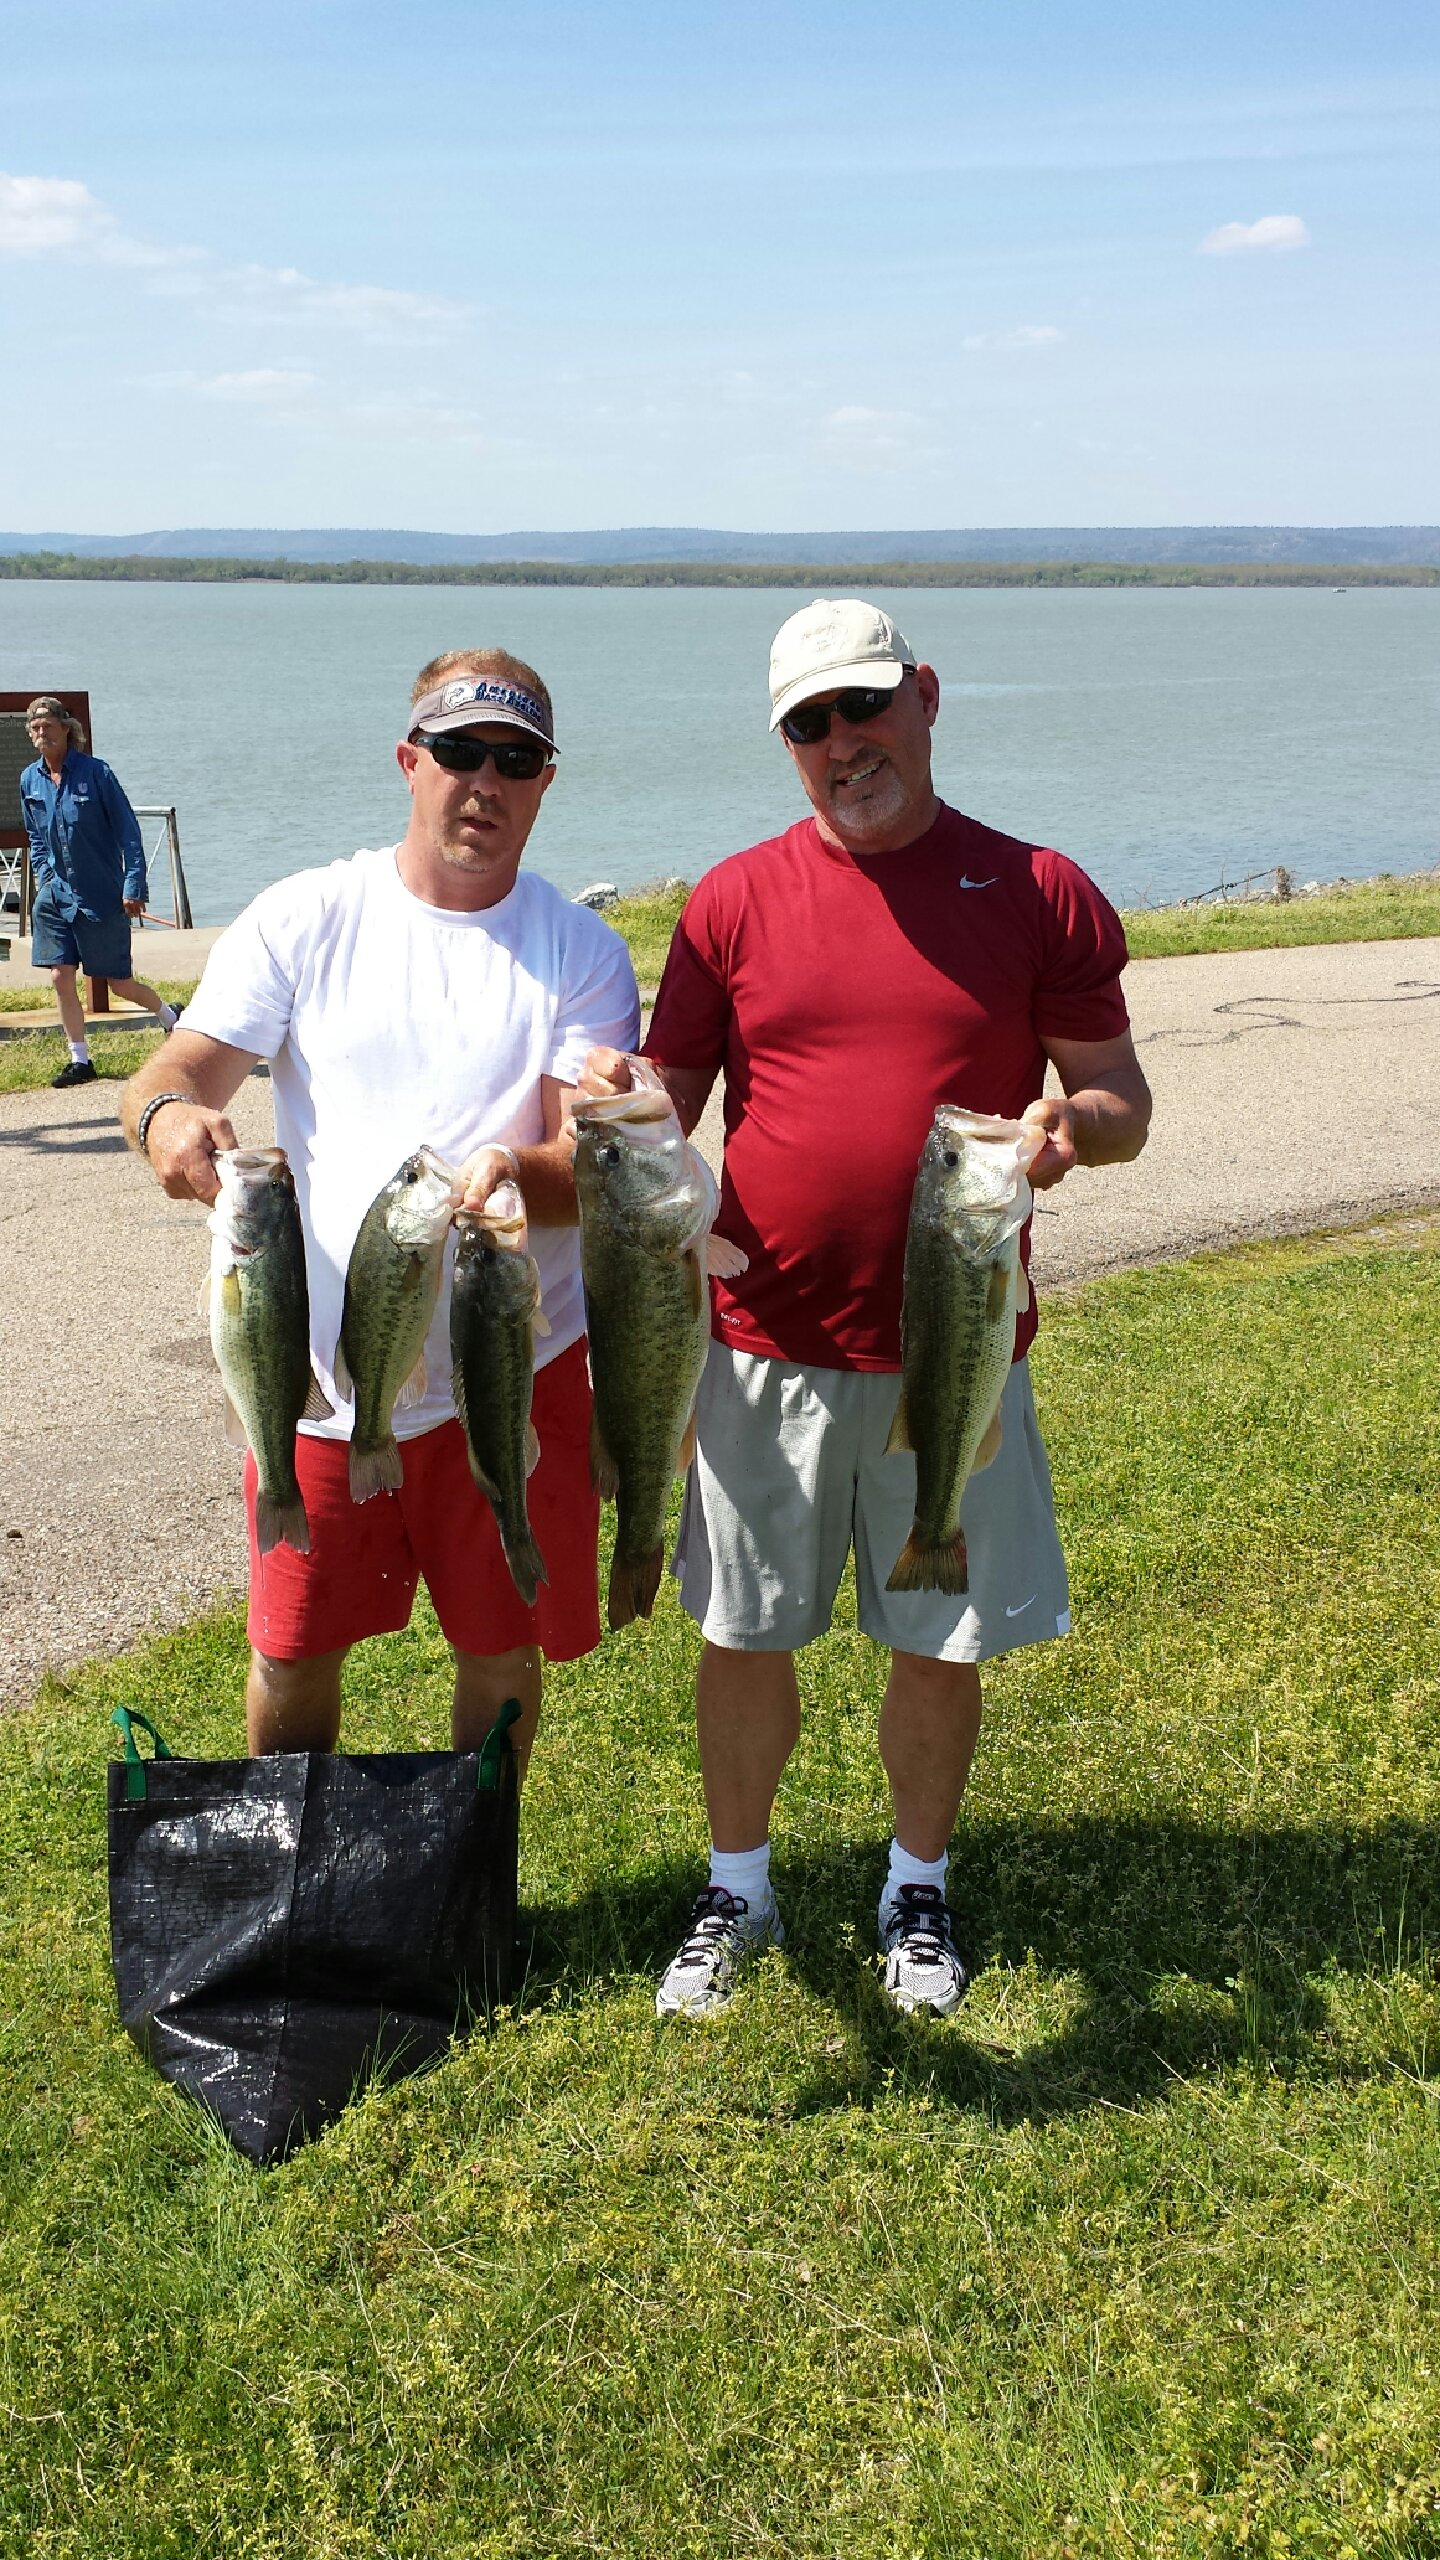 Tim ODaniel & Rodney Faulkenberry 3rd Place 23.29 & Big Bass 9.17 lbs